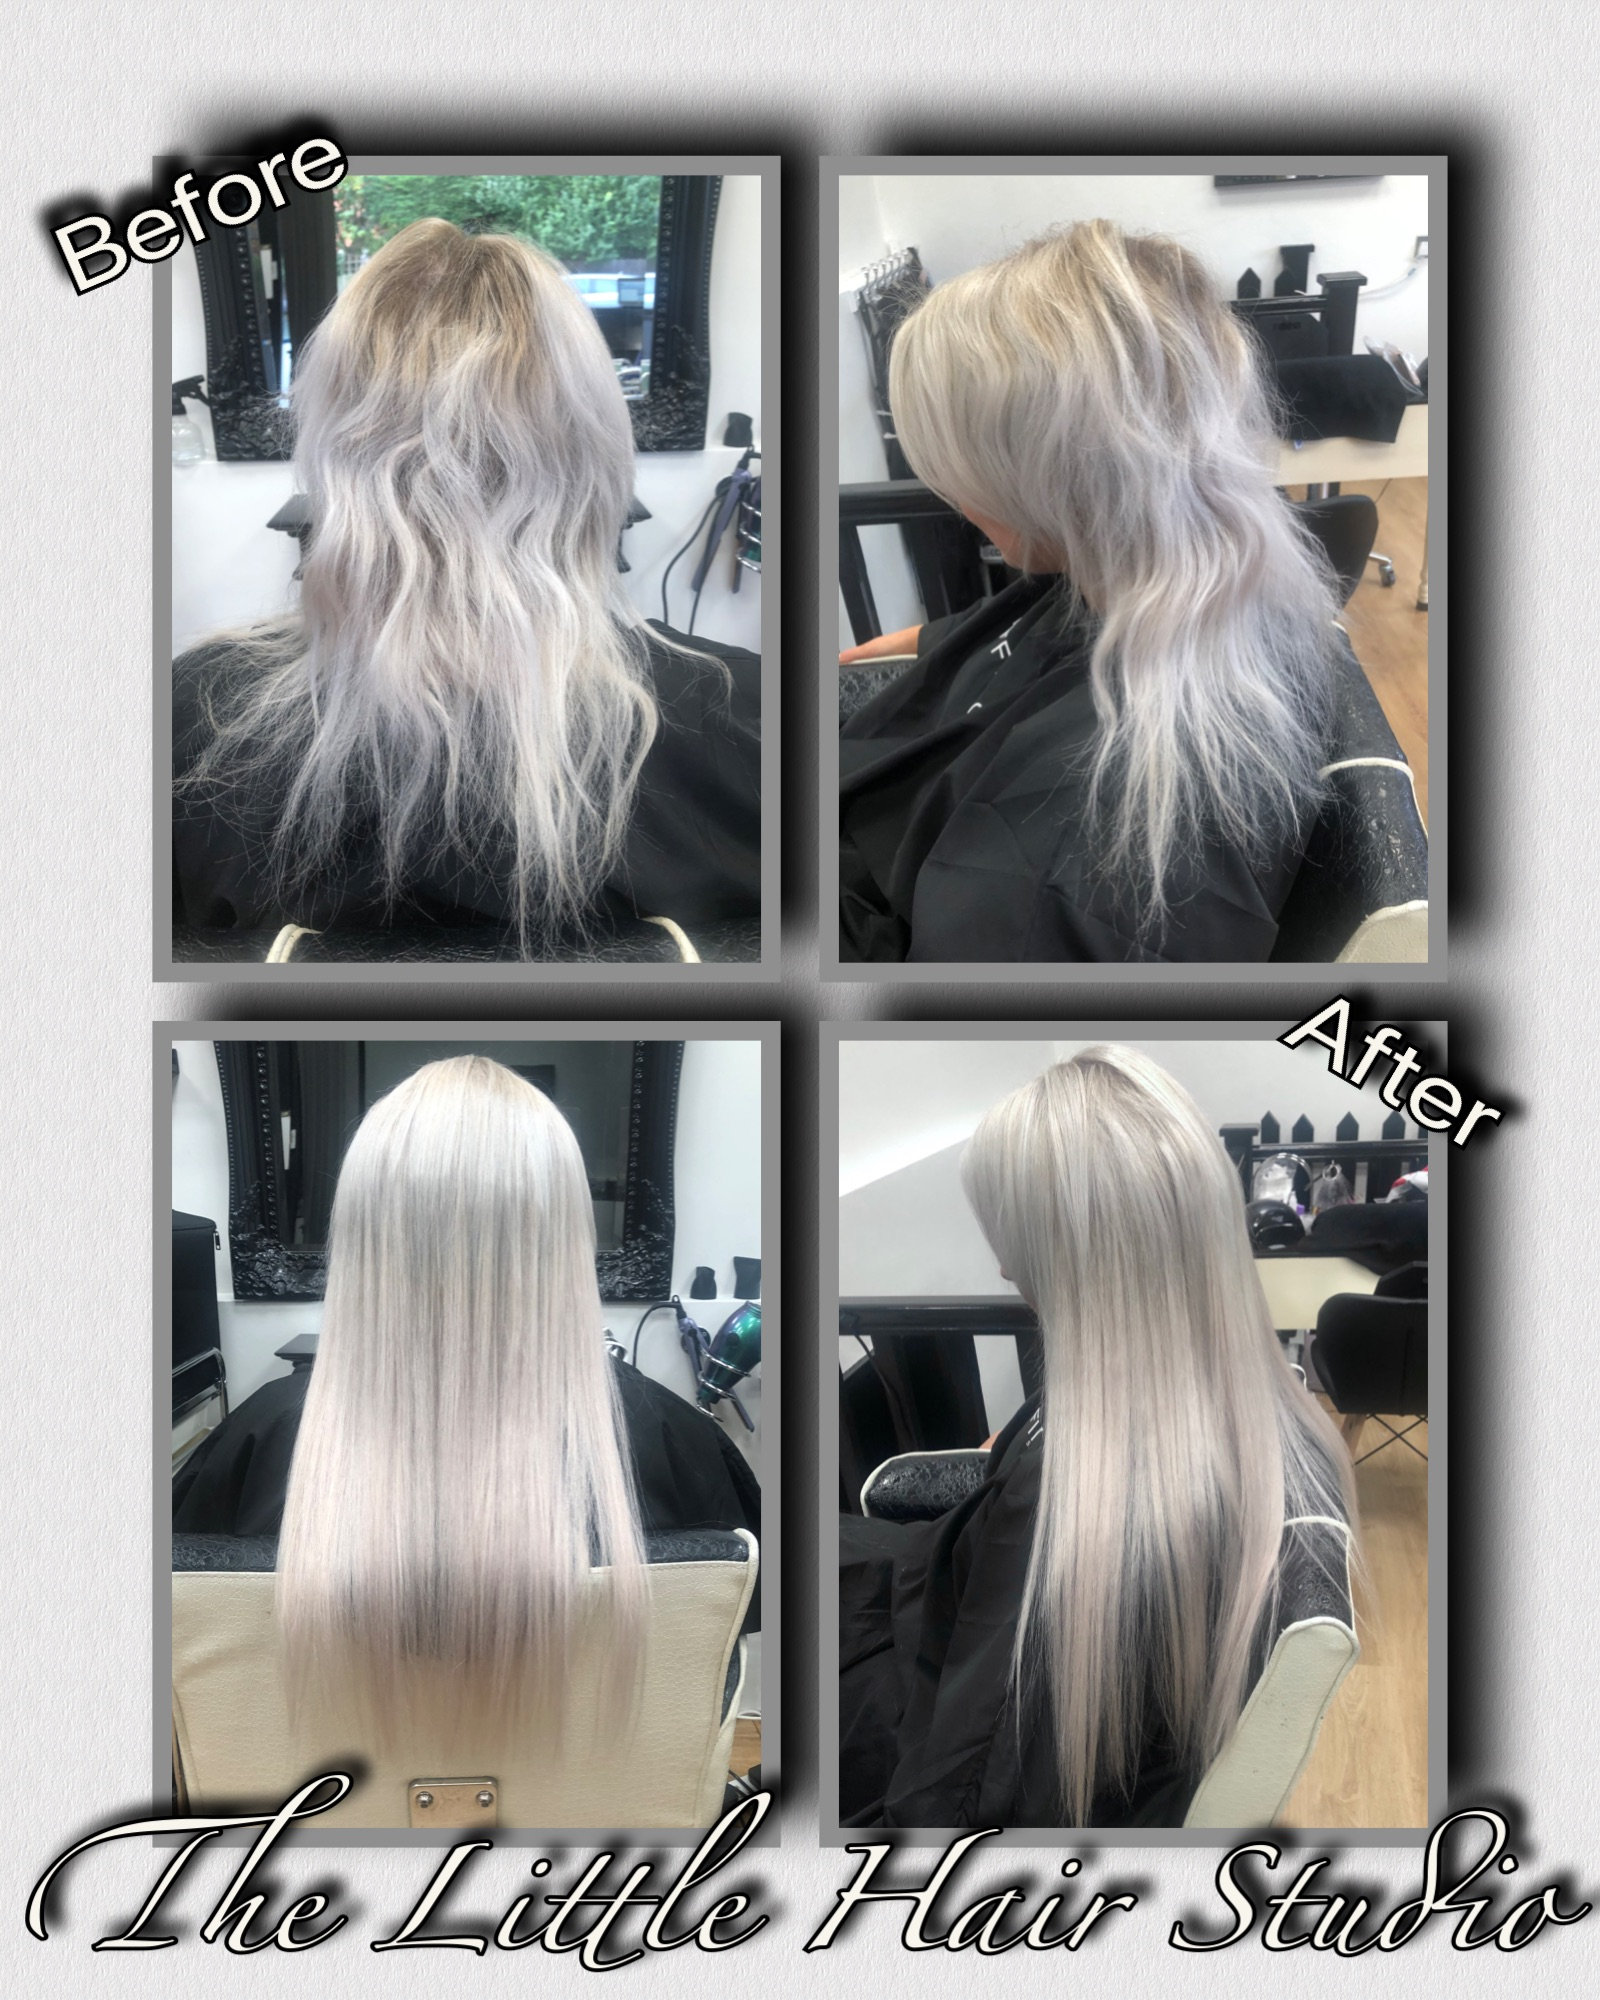 babylites and Hair Extensions